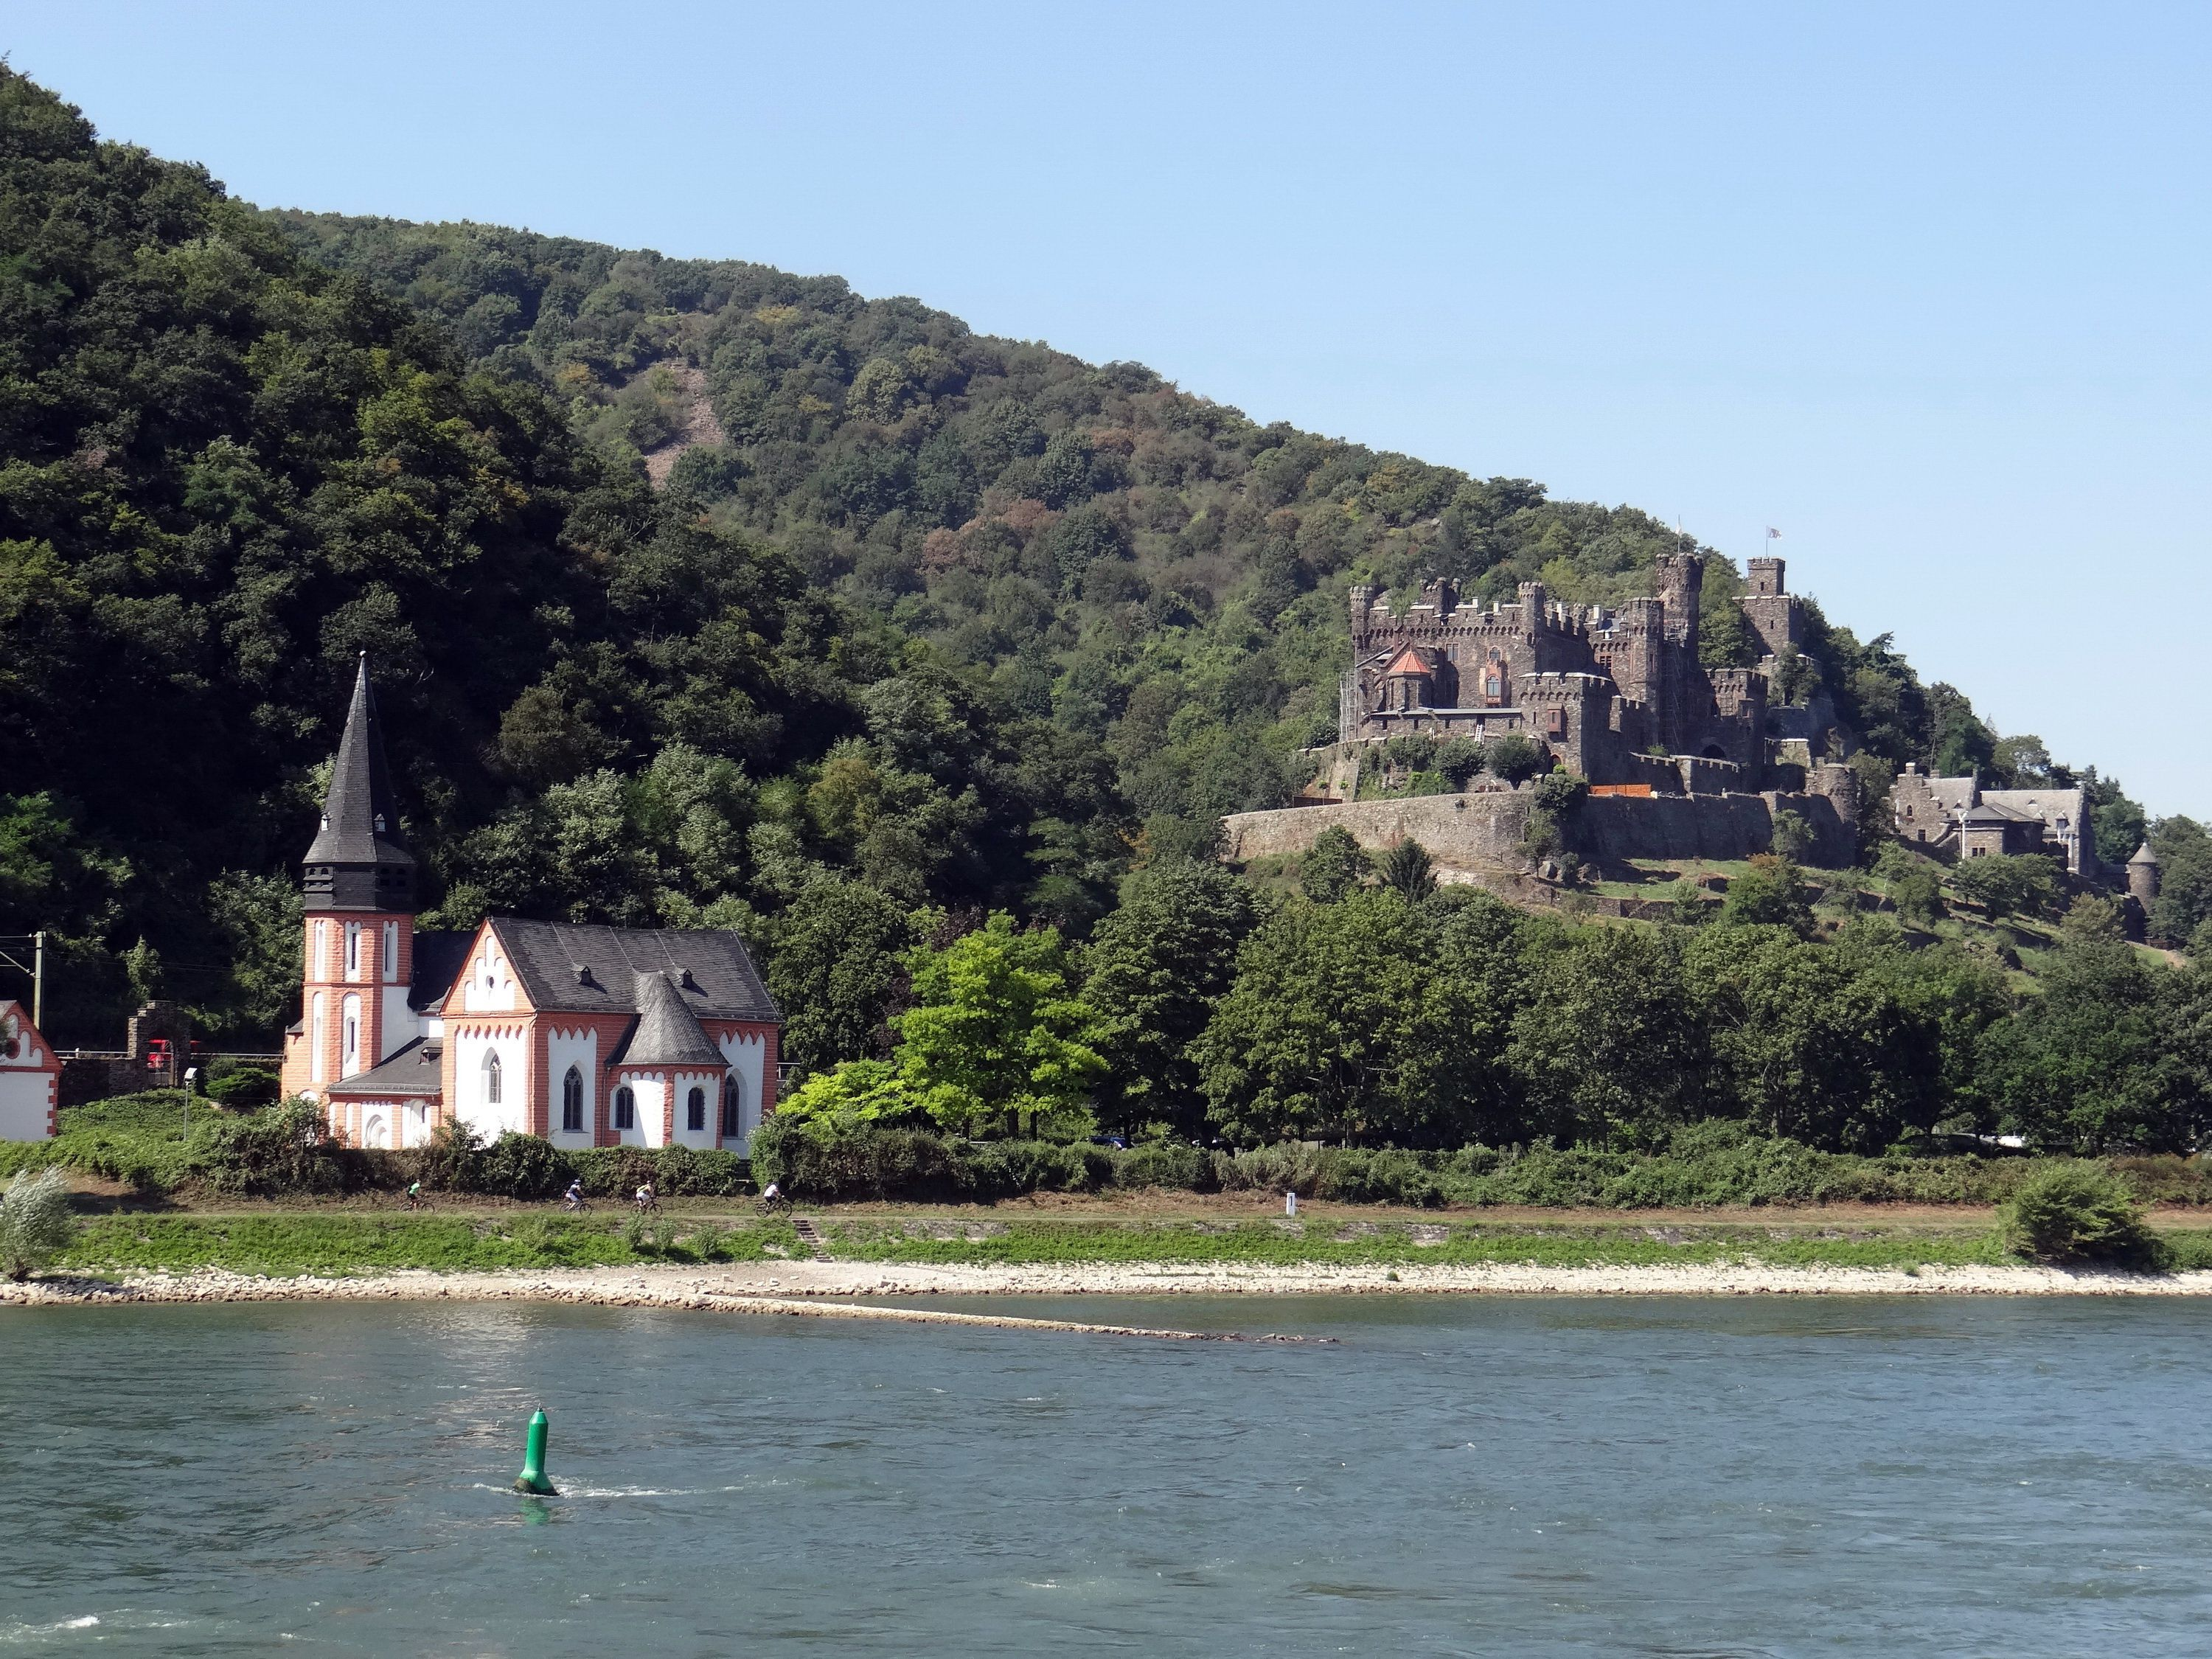 Rhine and Main River Cruise Photo Journal